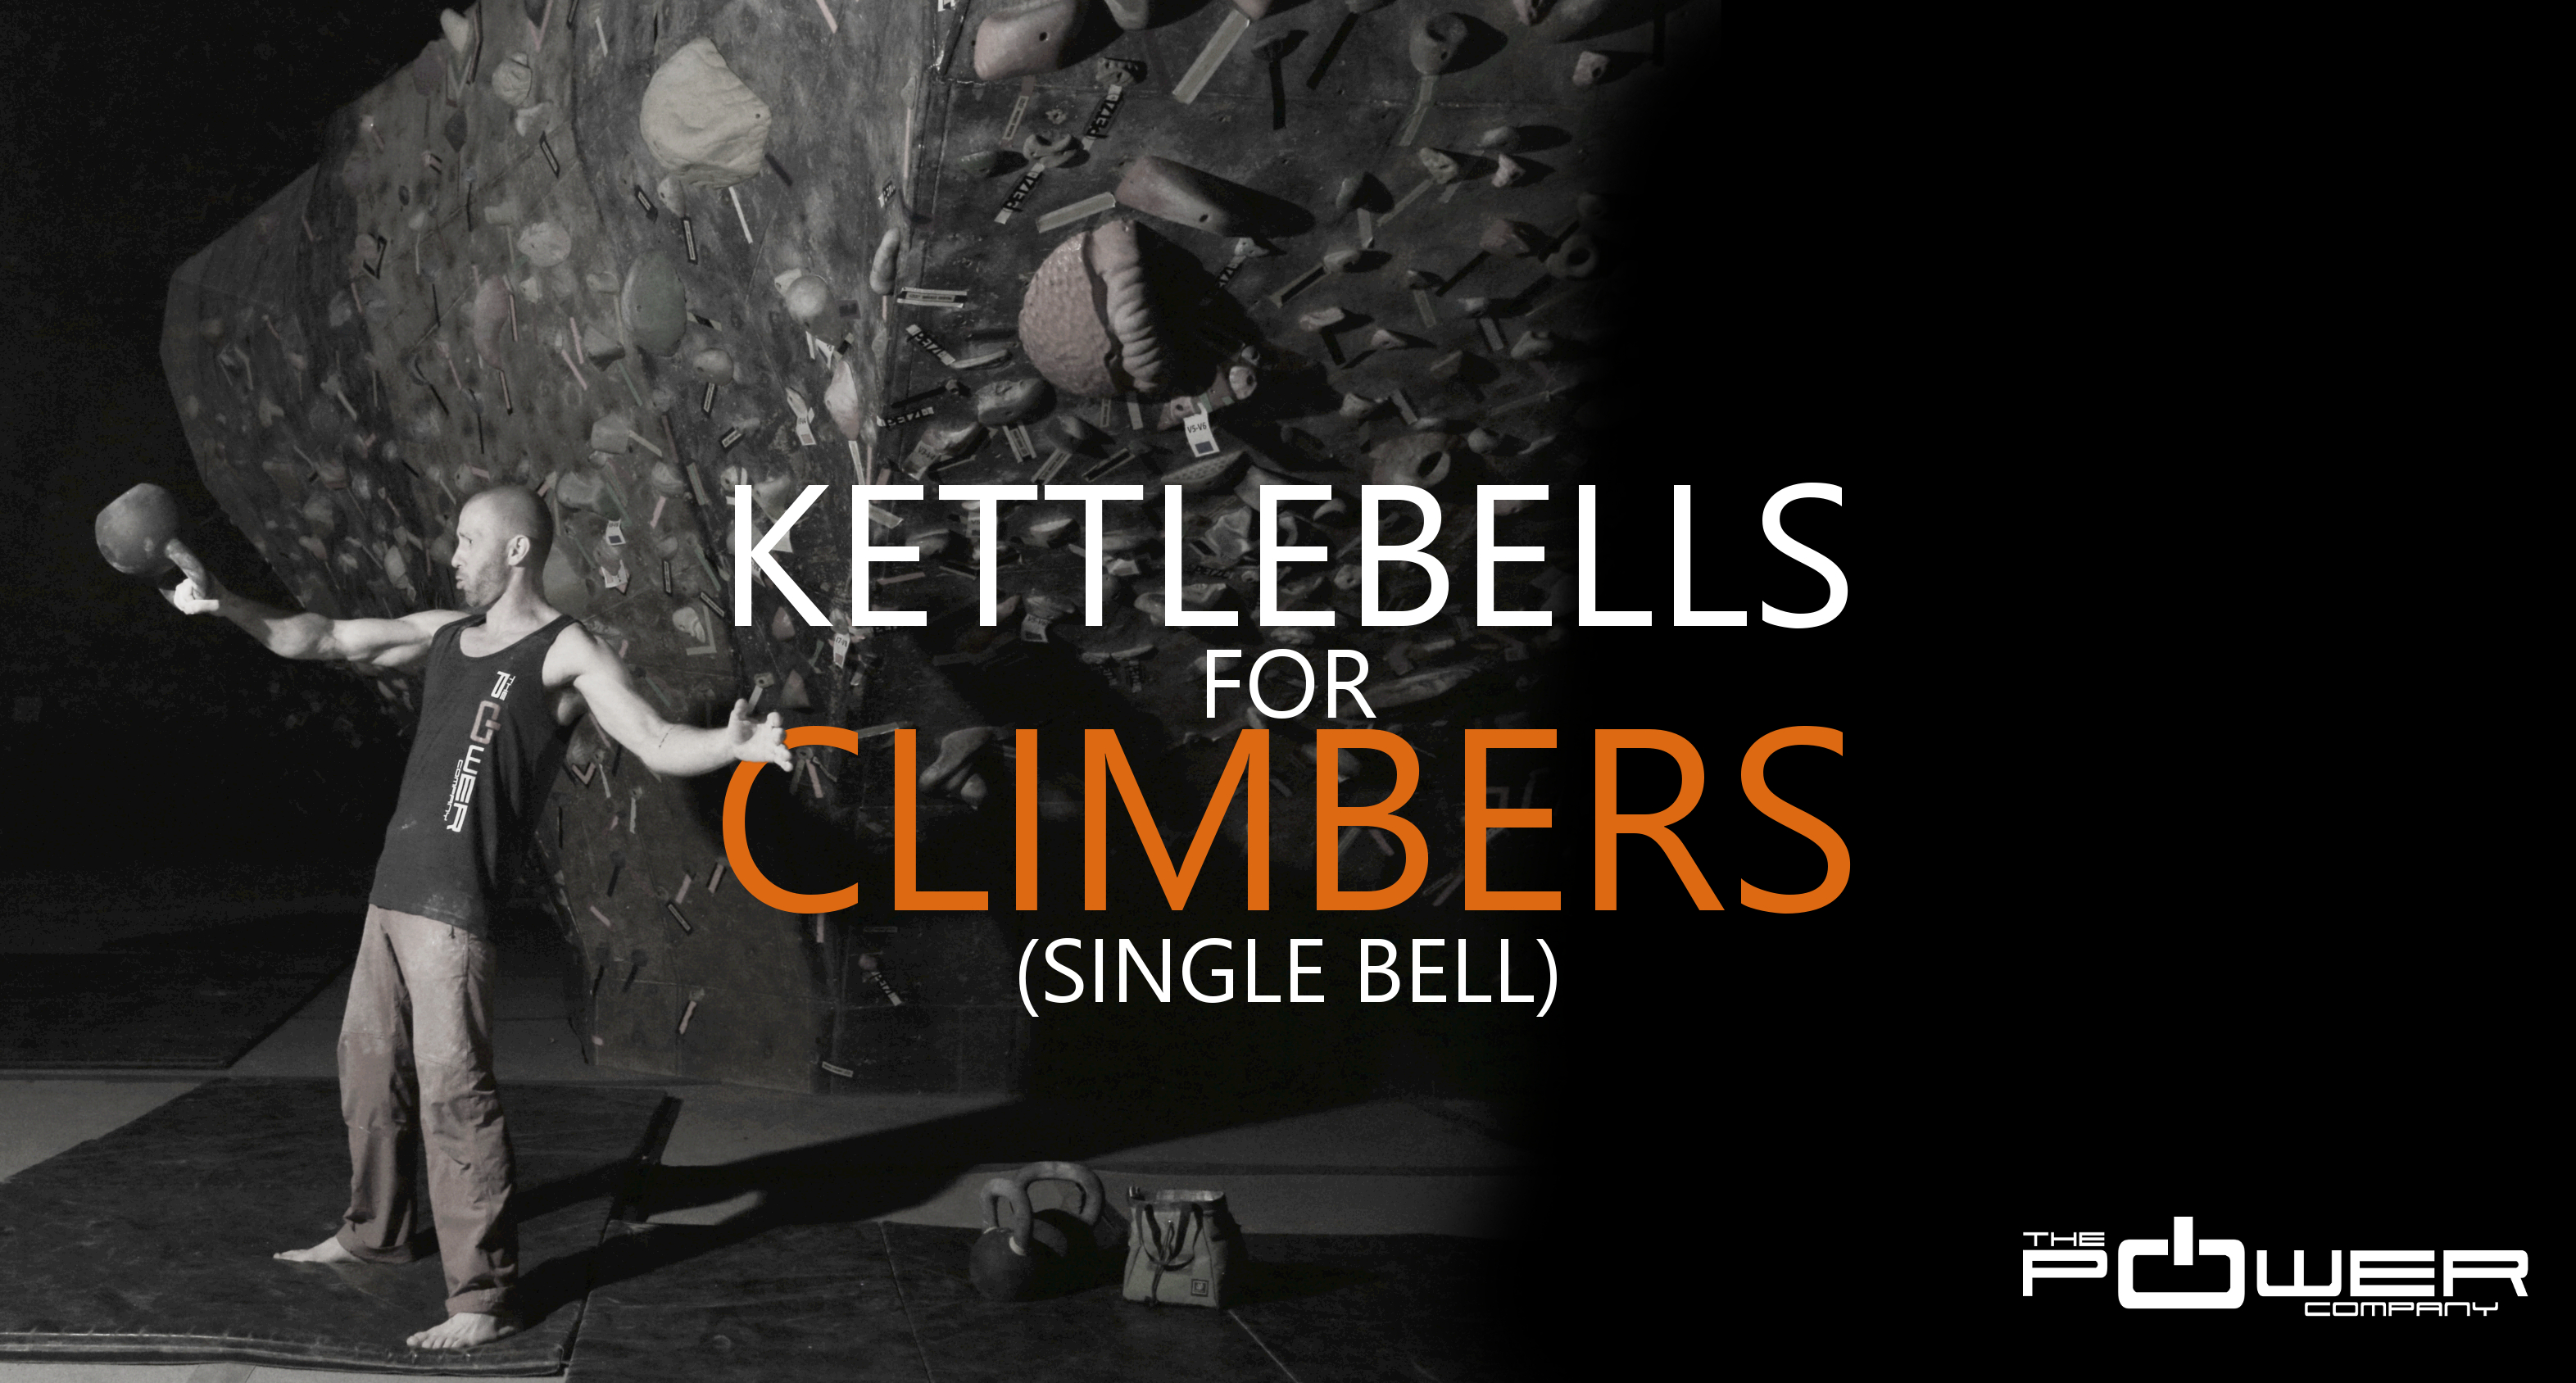 kettlebells for climbers single bell image